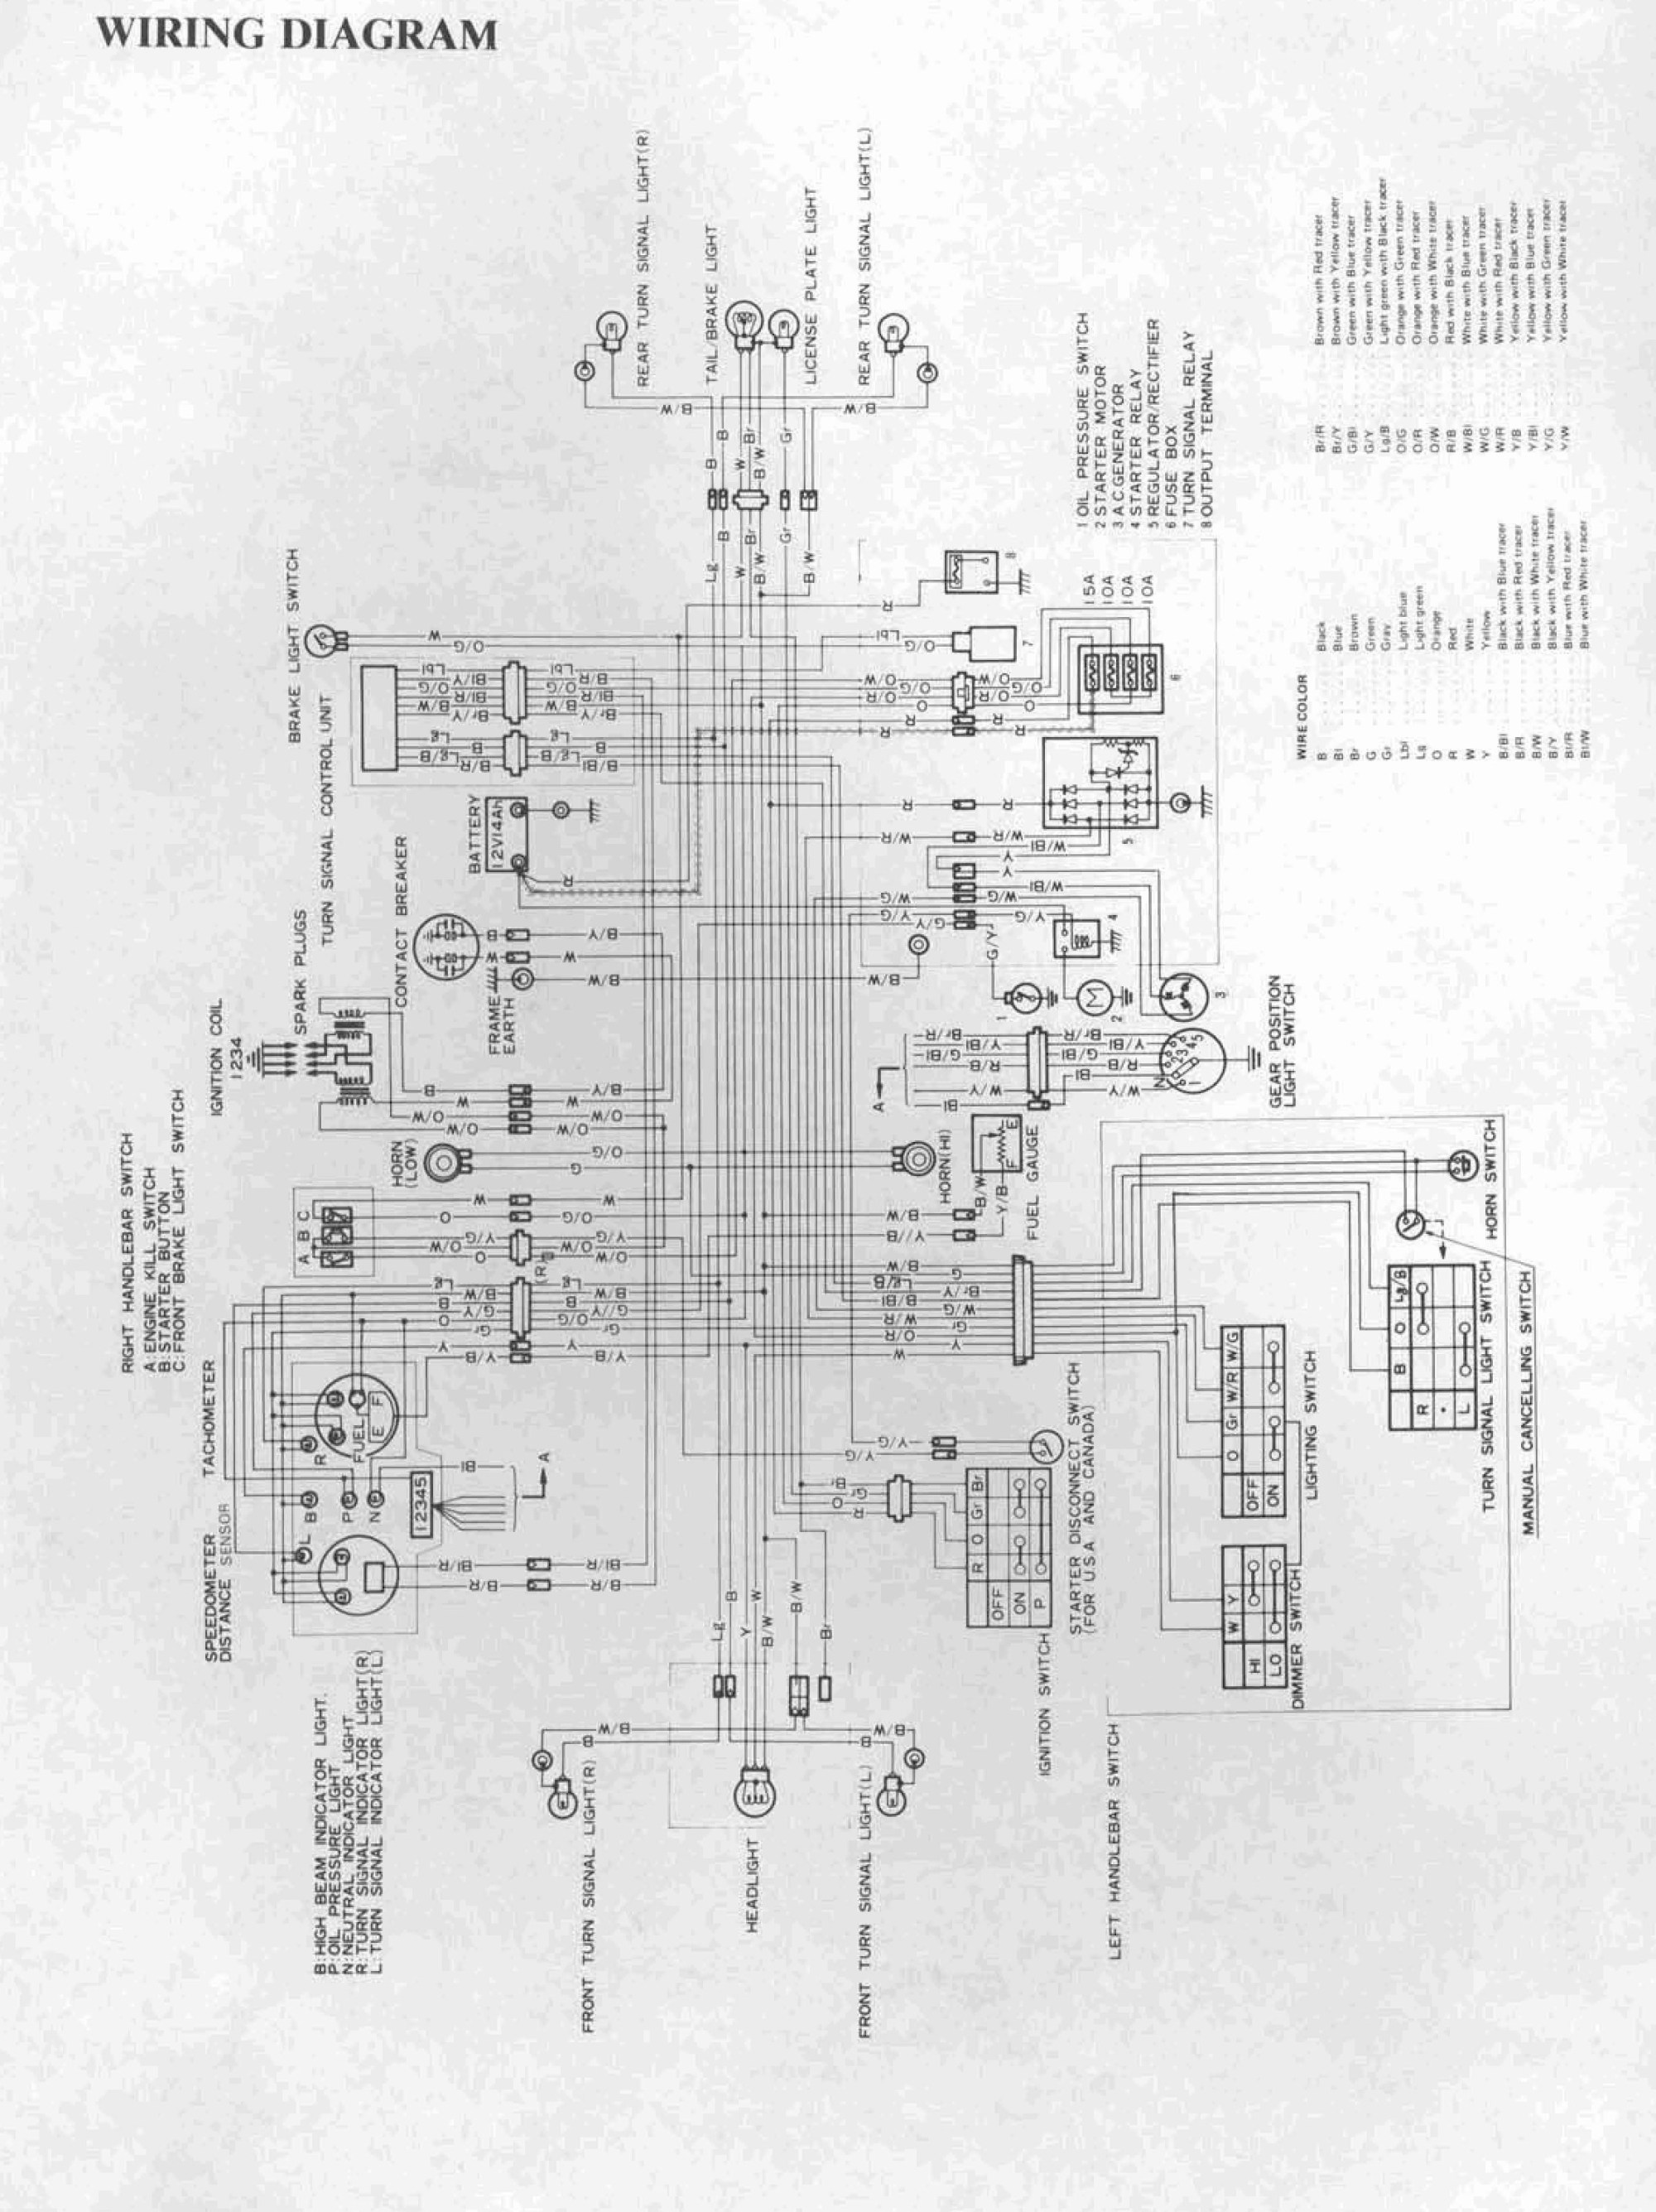 hight resolution of 1982 suzuki gs850 wiring diagram bikecliff s website of 1982 suzuki gs850 wiring diagram 1980 suzuki